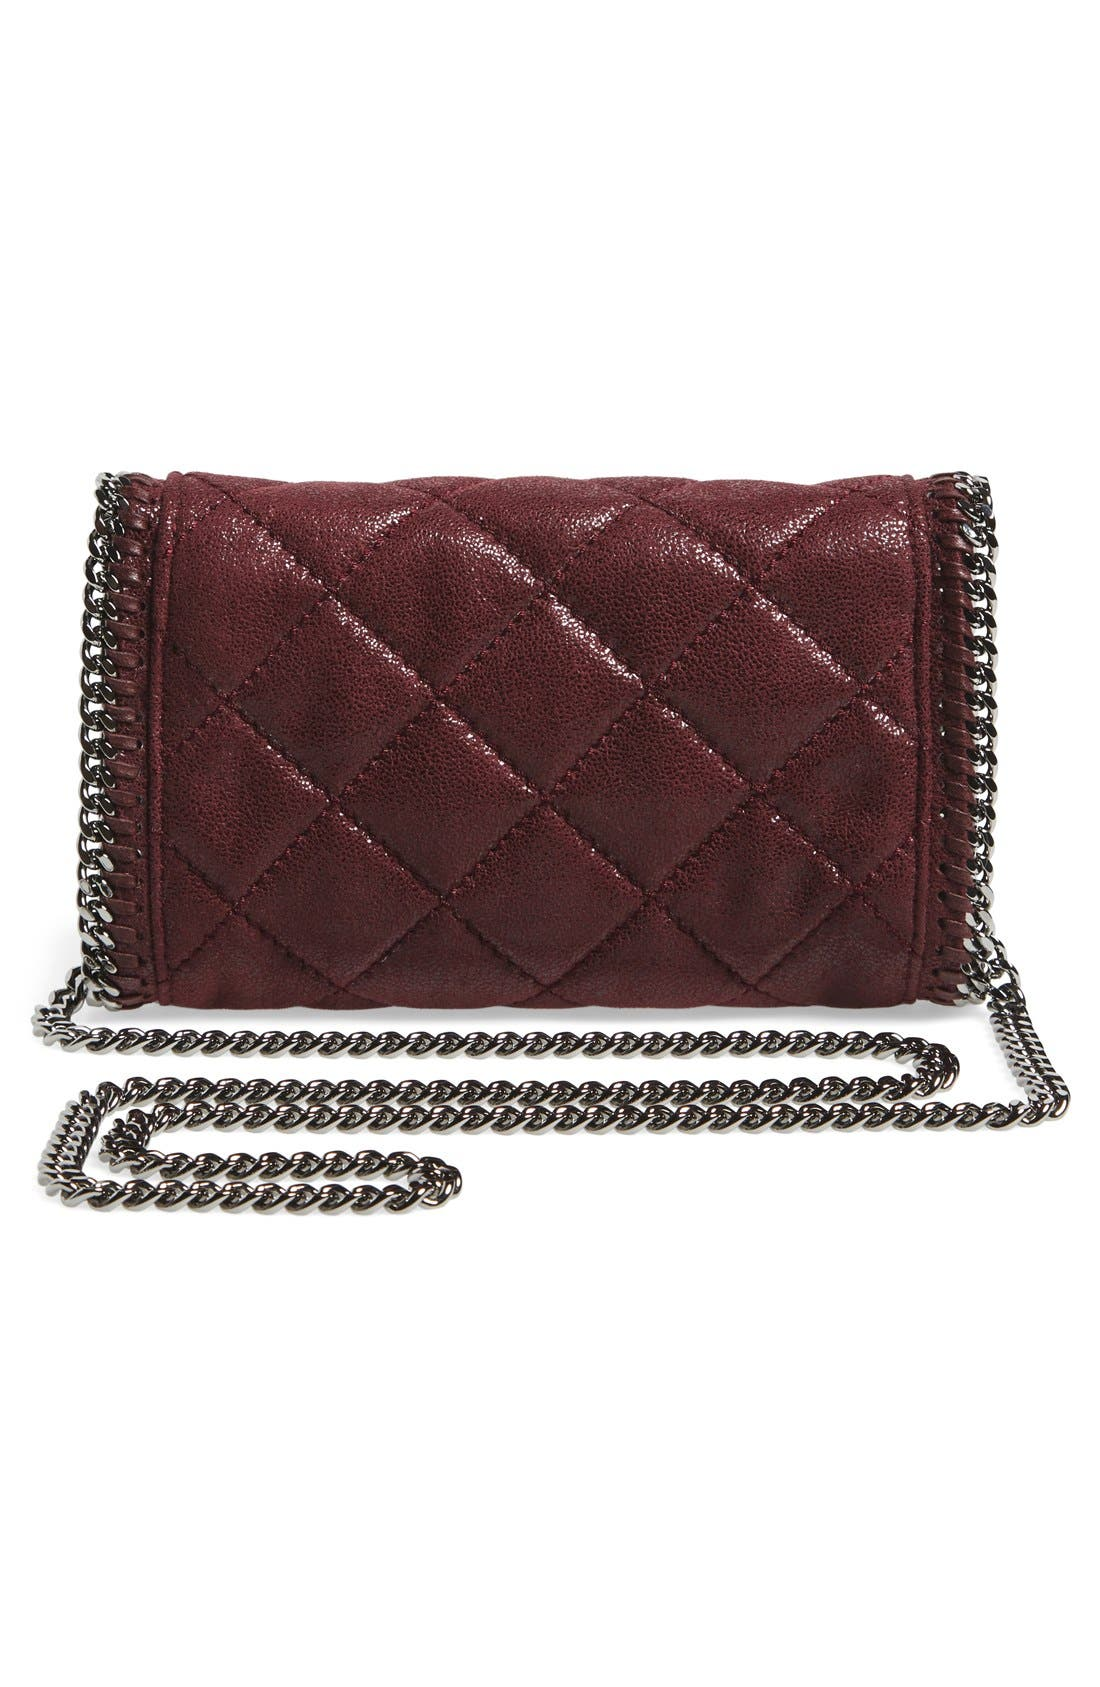 'Falabella' Quilted Faux Leather Crossbody Bag,                             Alternate thumbnail 12, color,